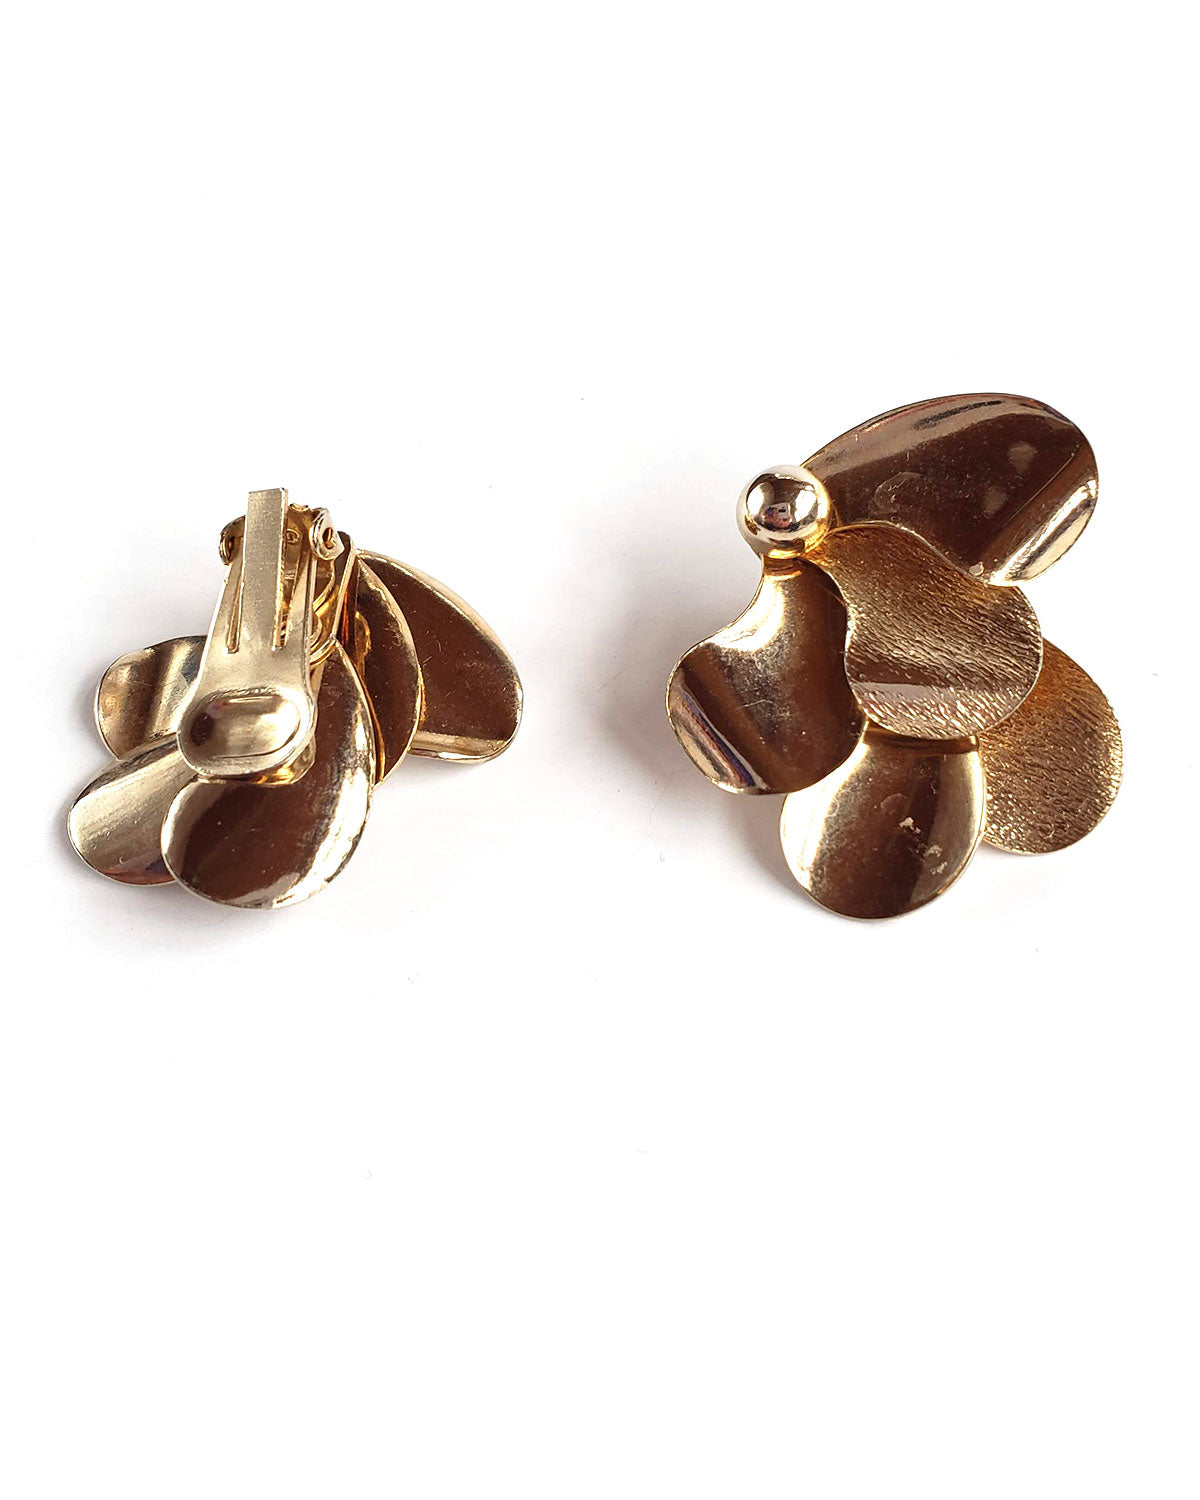 60s Mod Gold Flower Clip-on Earrings